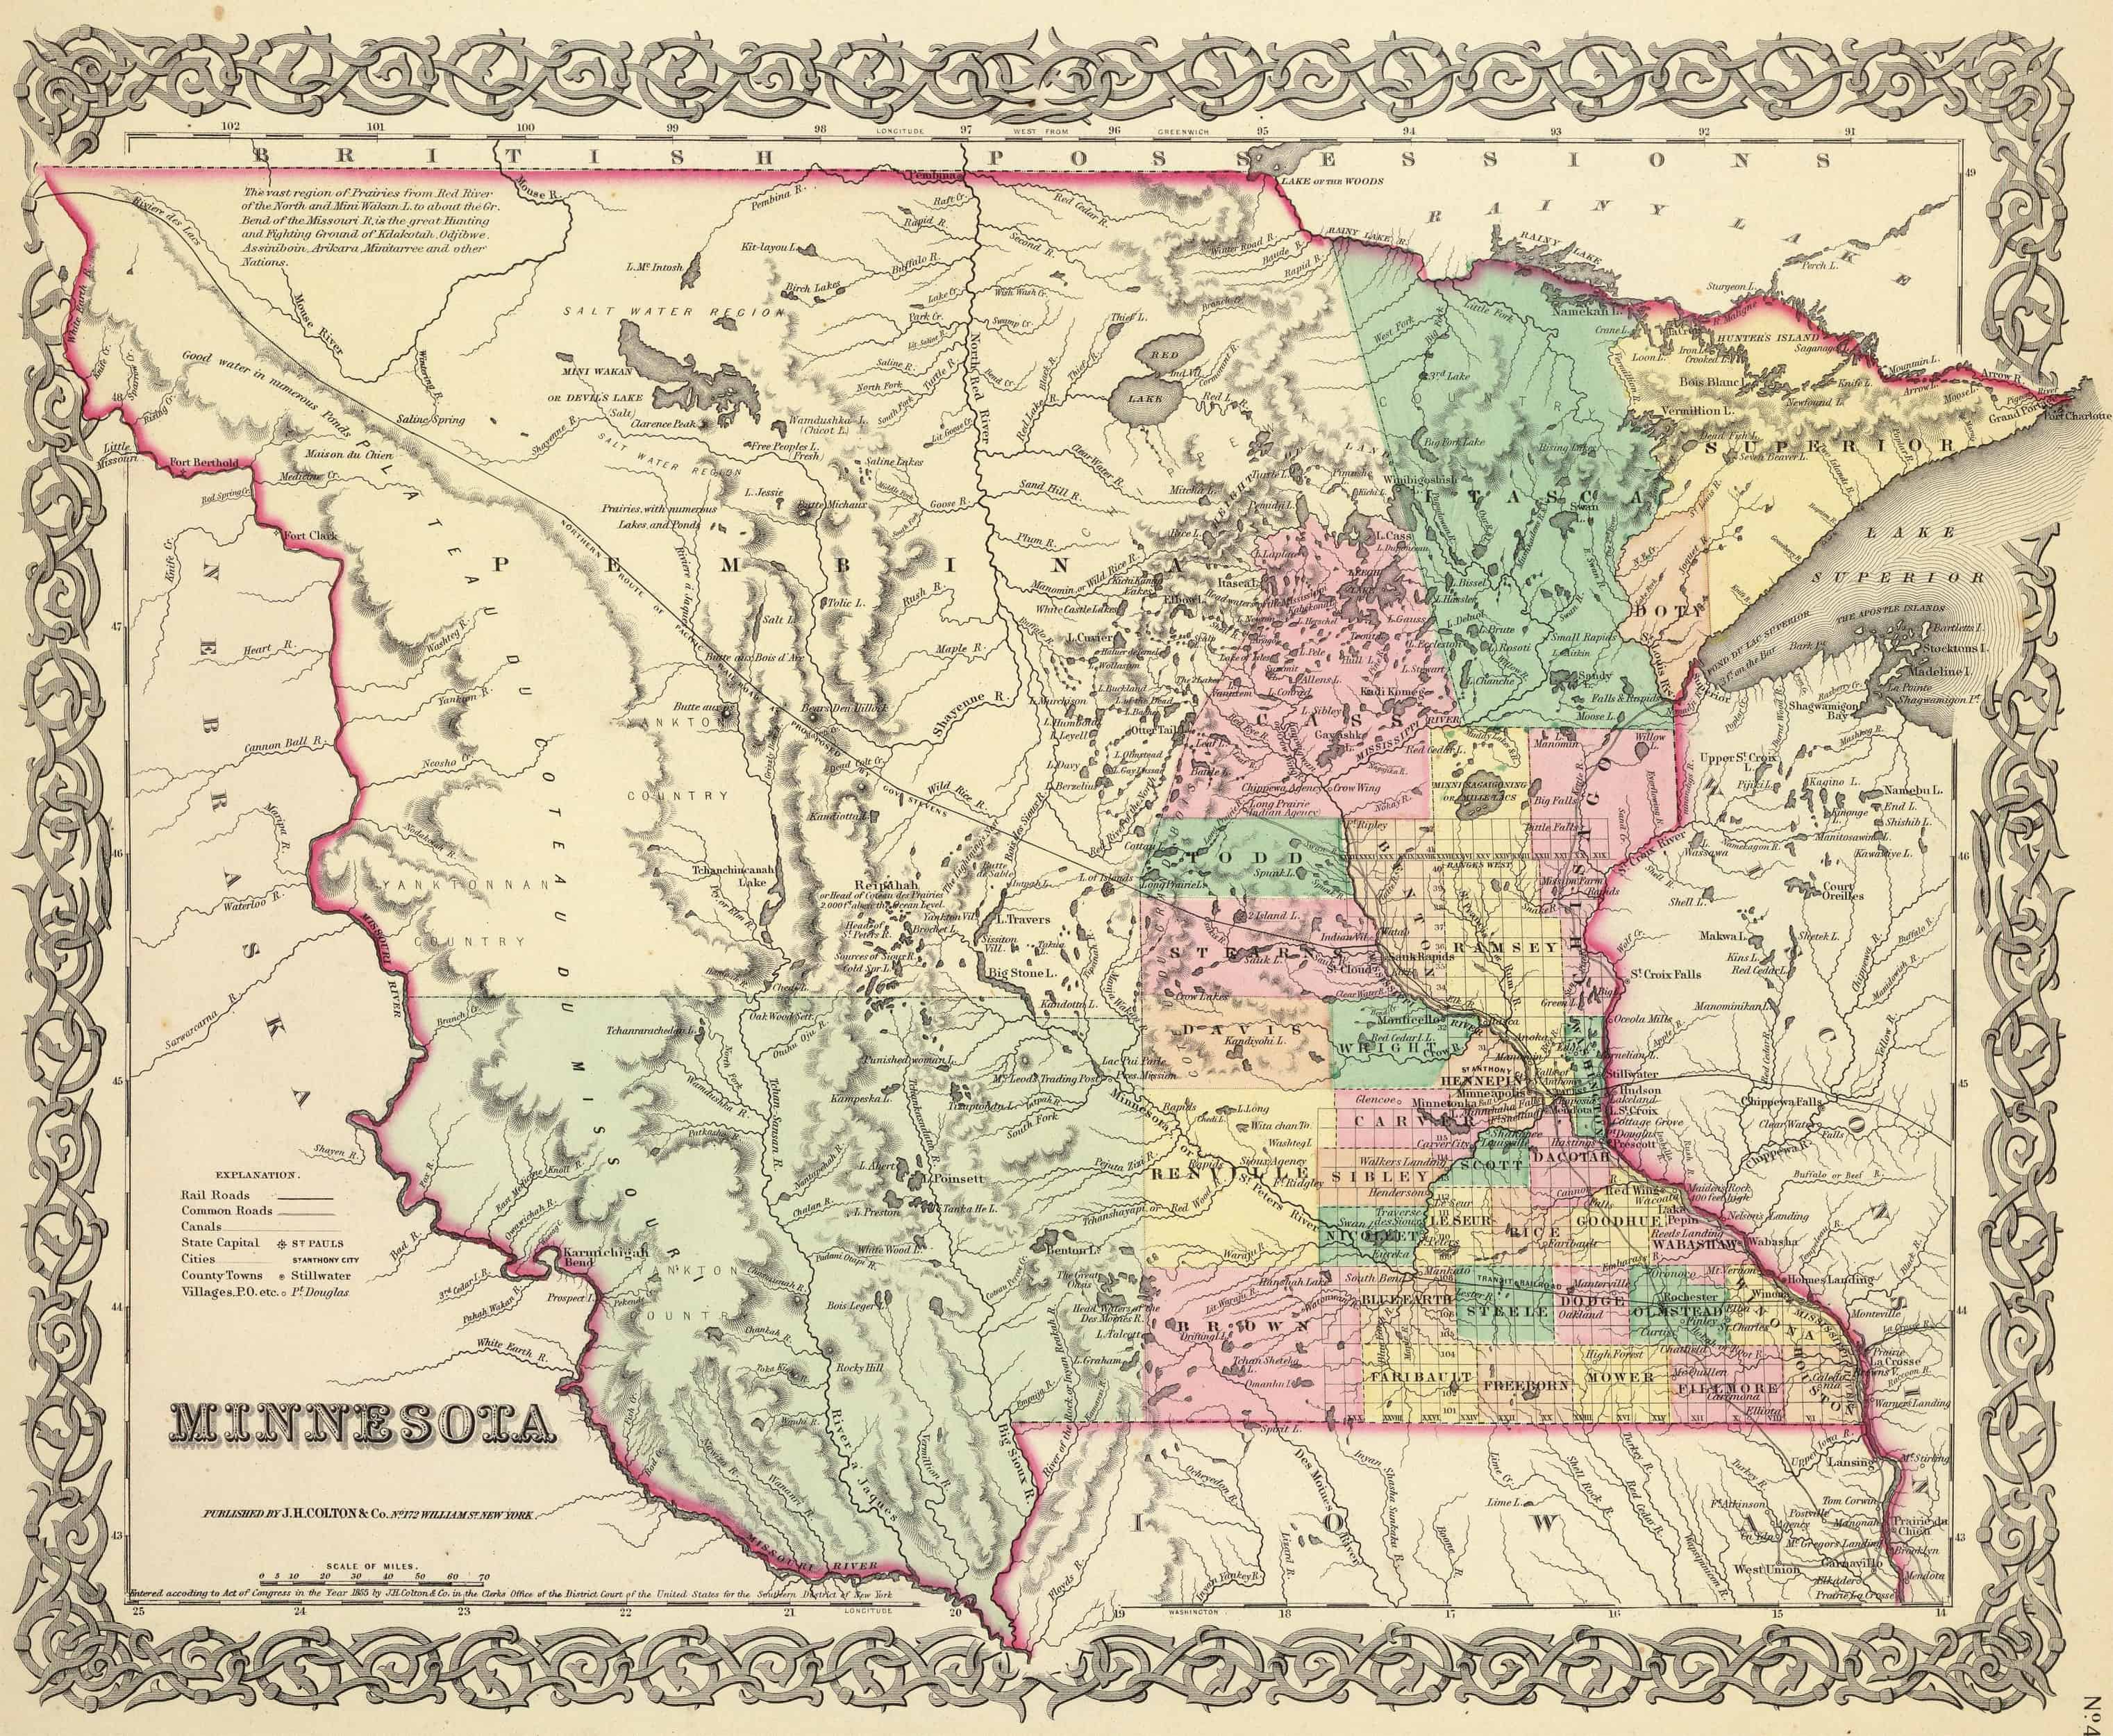 Old Historical City, County and State Maps of Minnesota on map of wisconsin and minnesota, map of southeast fl, map of minnesota small towns, map of southeast cu, map of southeast mt, map of all regions, map of southeast bc, map of twin cities metro, map of iowa area, map of minneapolis suburbs, map of southeast asia, map of minnesota cities and towns, map of northeast iowa, map of south dakota and minnesota, map of northern minnesota cities, map of southeast ct, map of minneapolis/st. paul, map of southeast ak, map of mankato, city of winona mn,